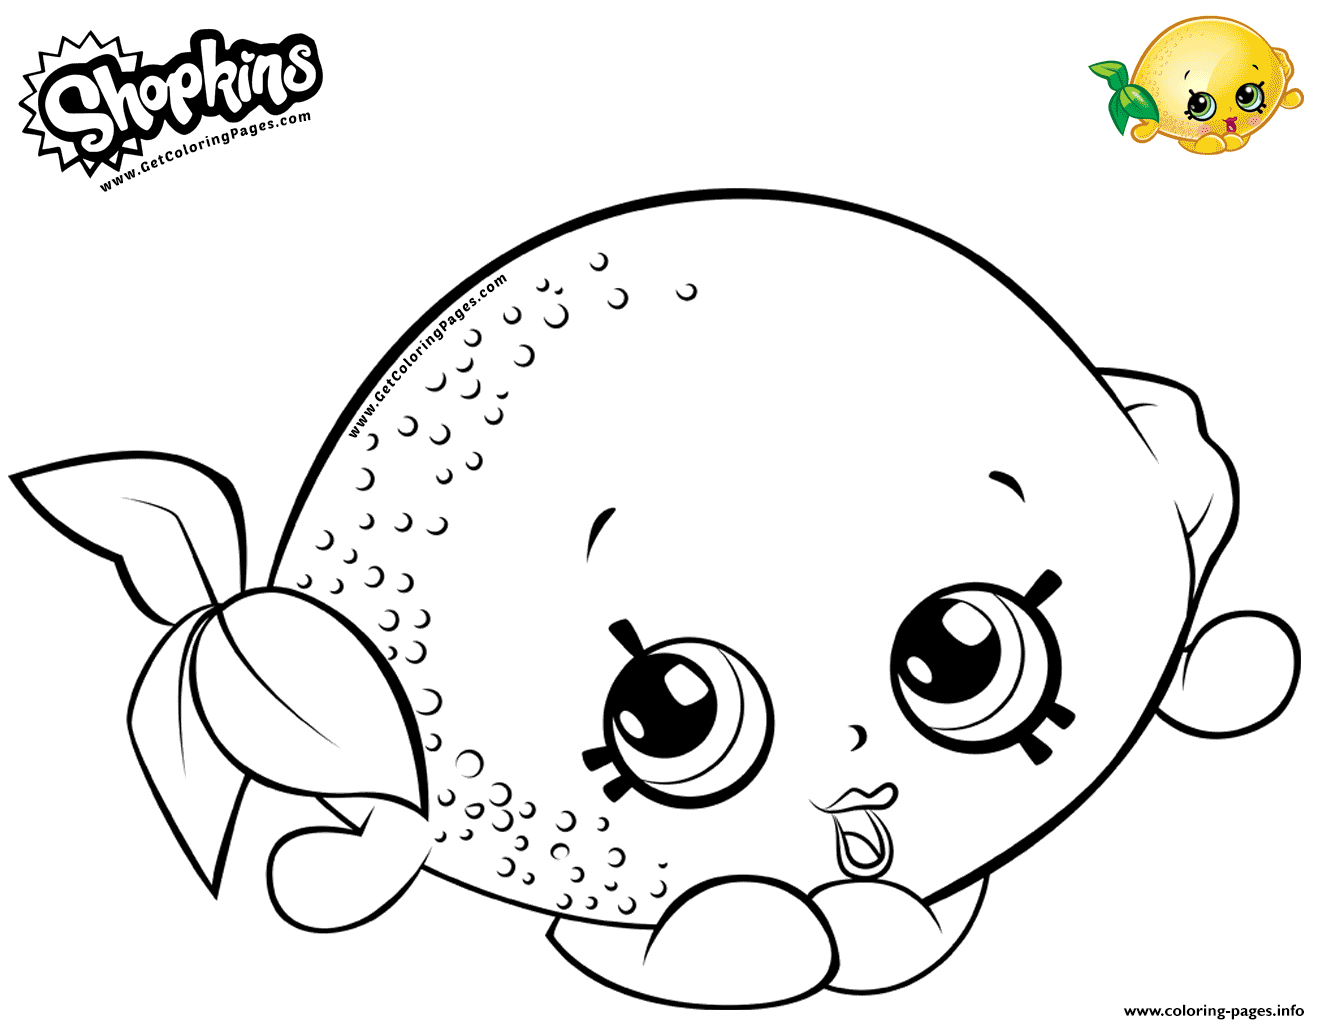 Print Cartoon Lemon Toy Coloring Pages Shopkins Colouring Pages Free Kids Coloring Pages Cute Coloring Pages